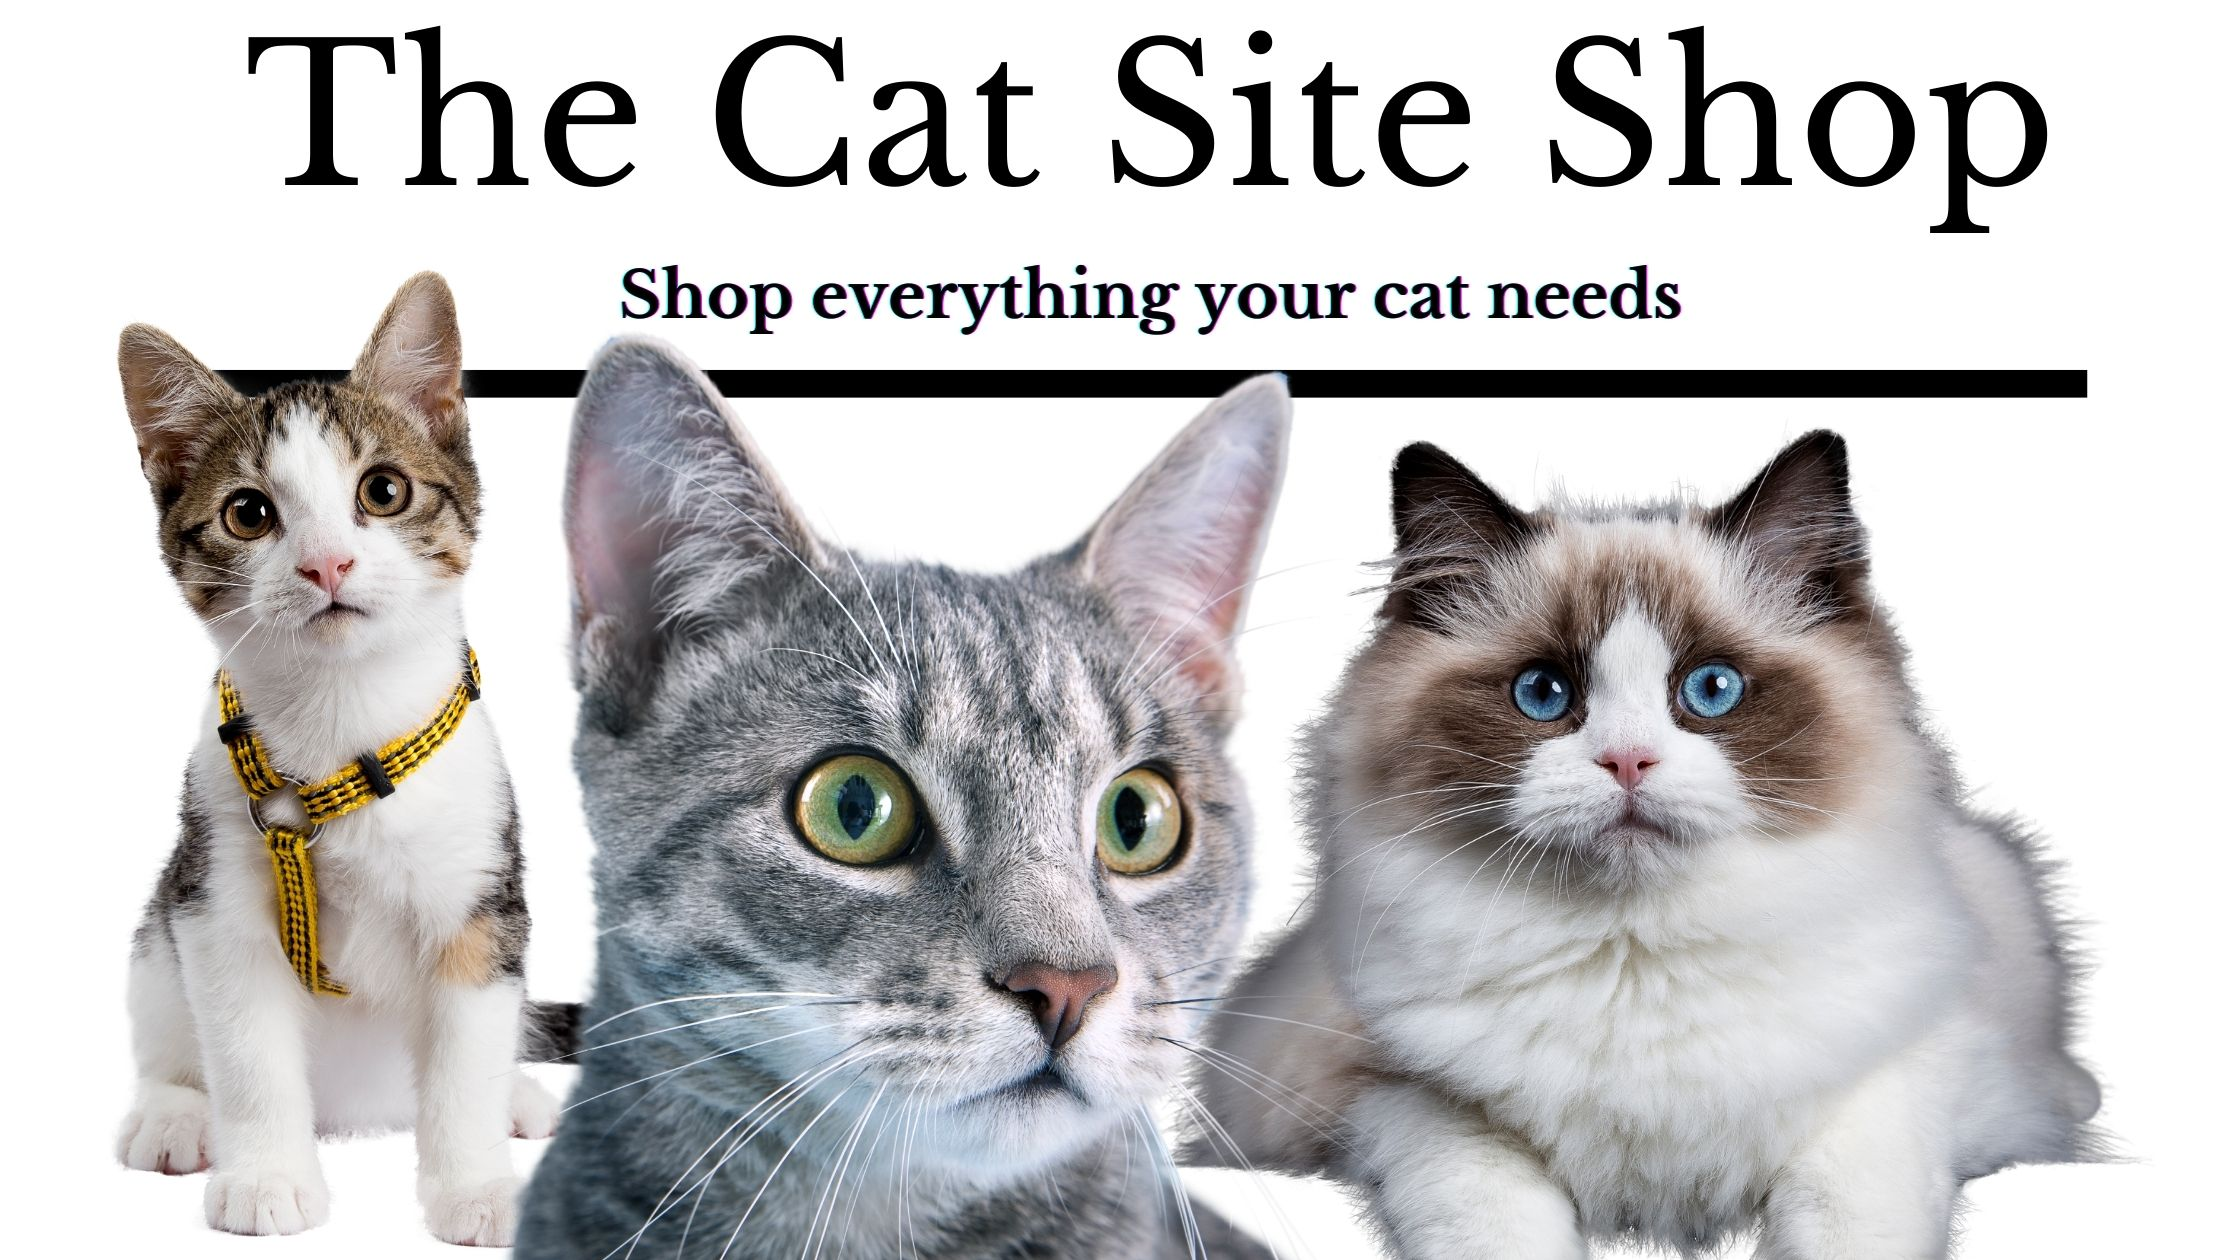 The cat site shop